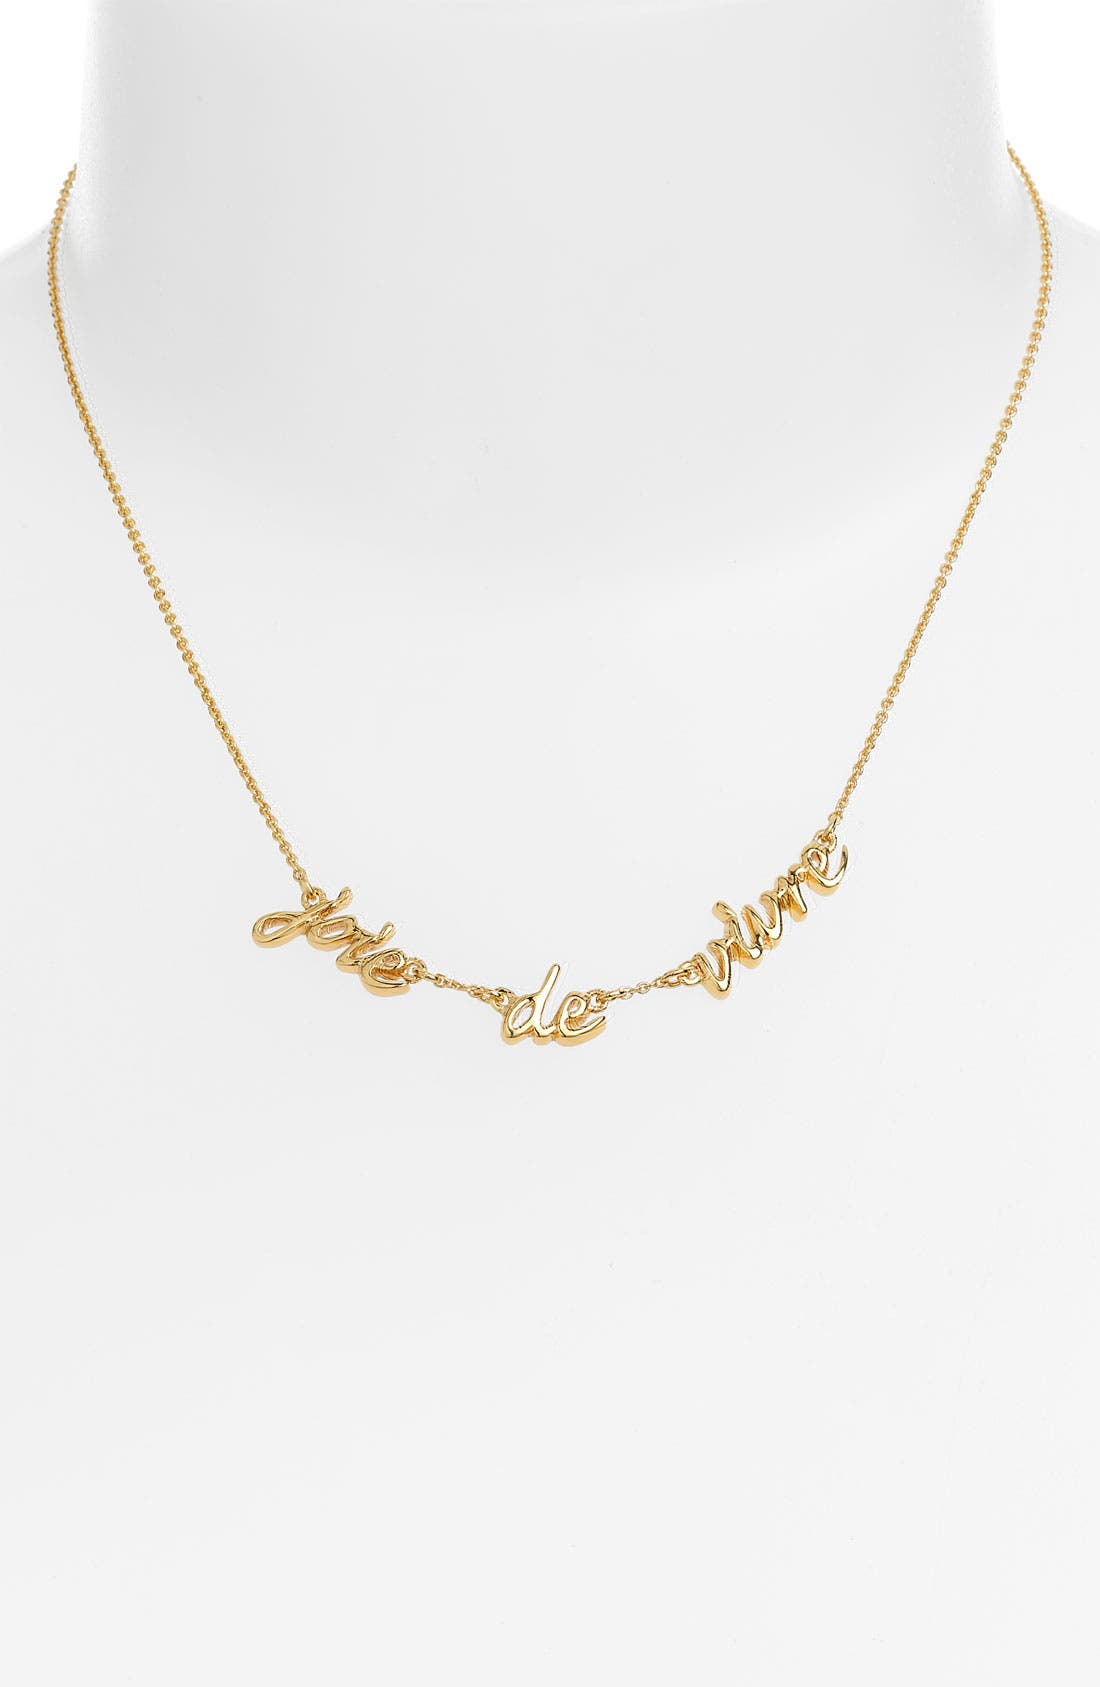 Main Image - kate spade 'say yes' station necklace